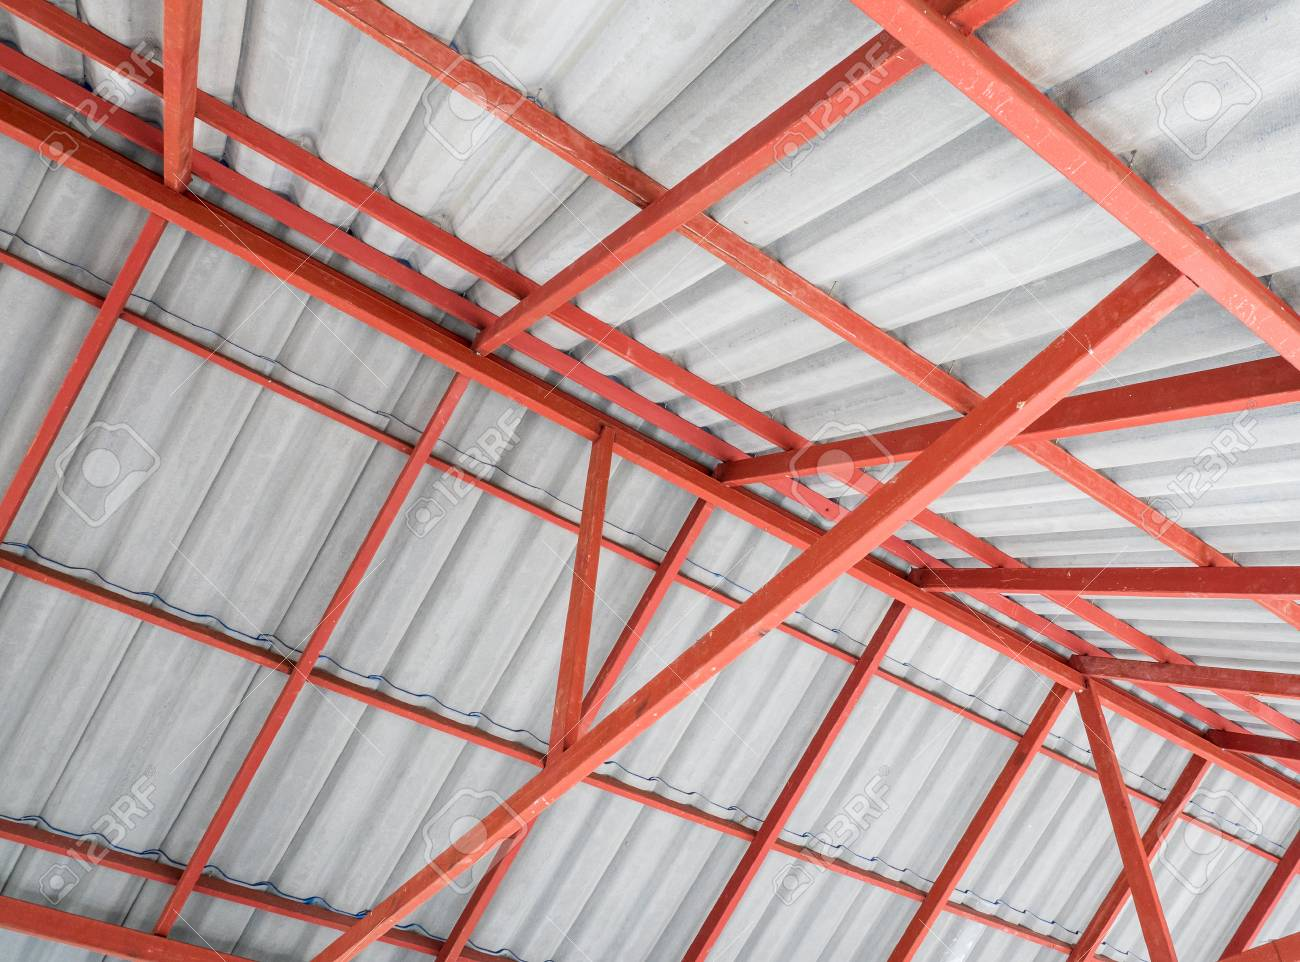 Inside of the Metal roof structure in the warehouse with the